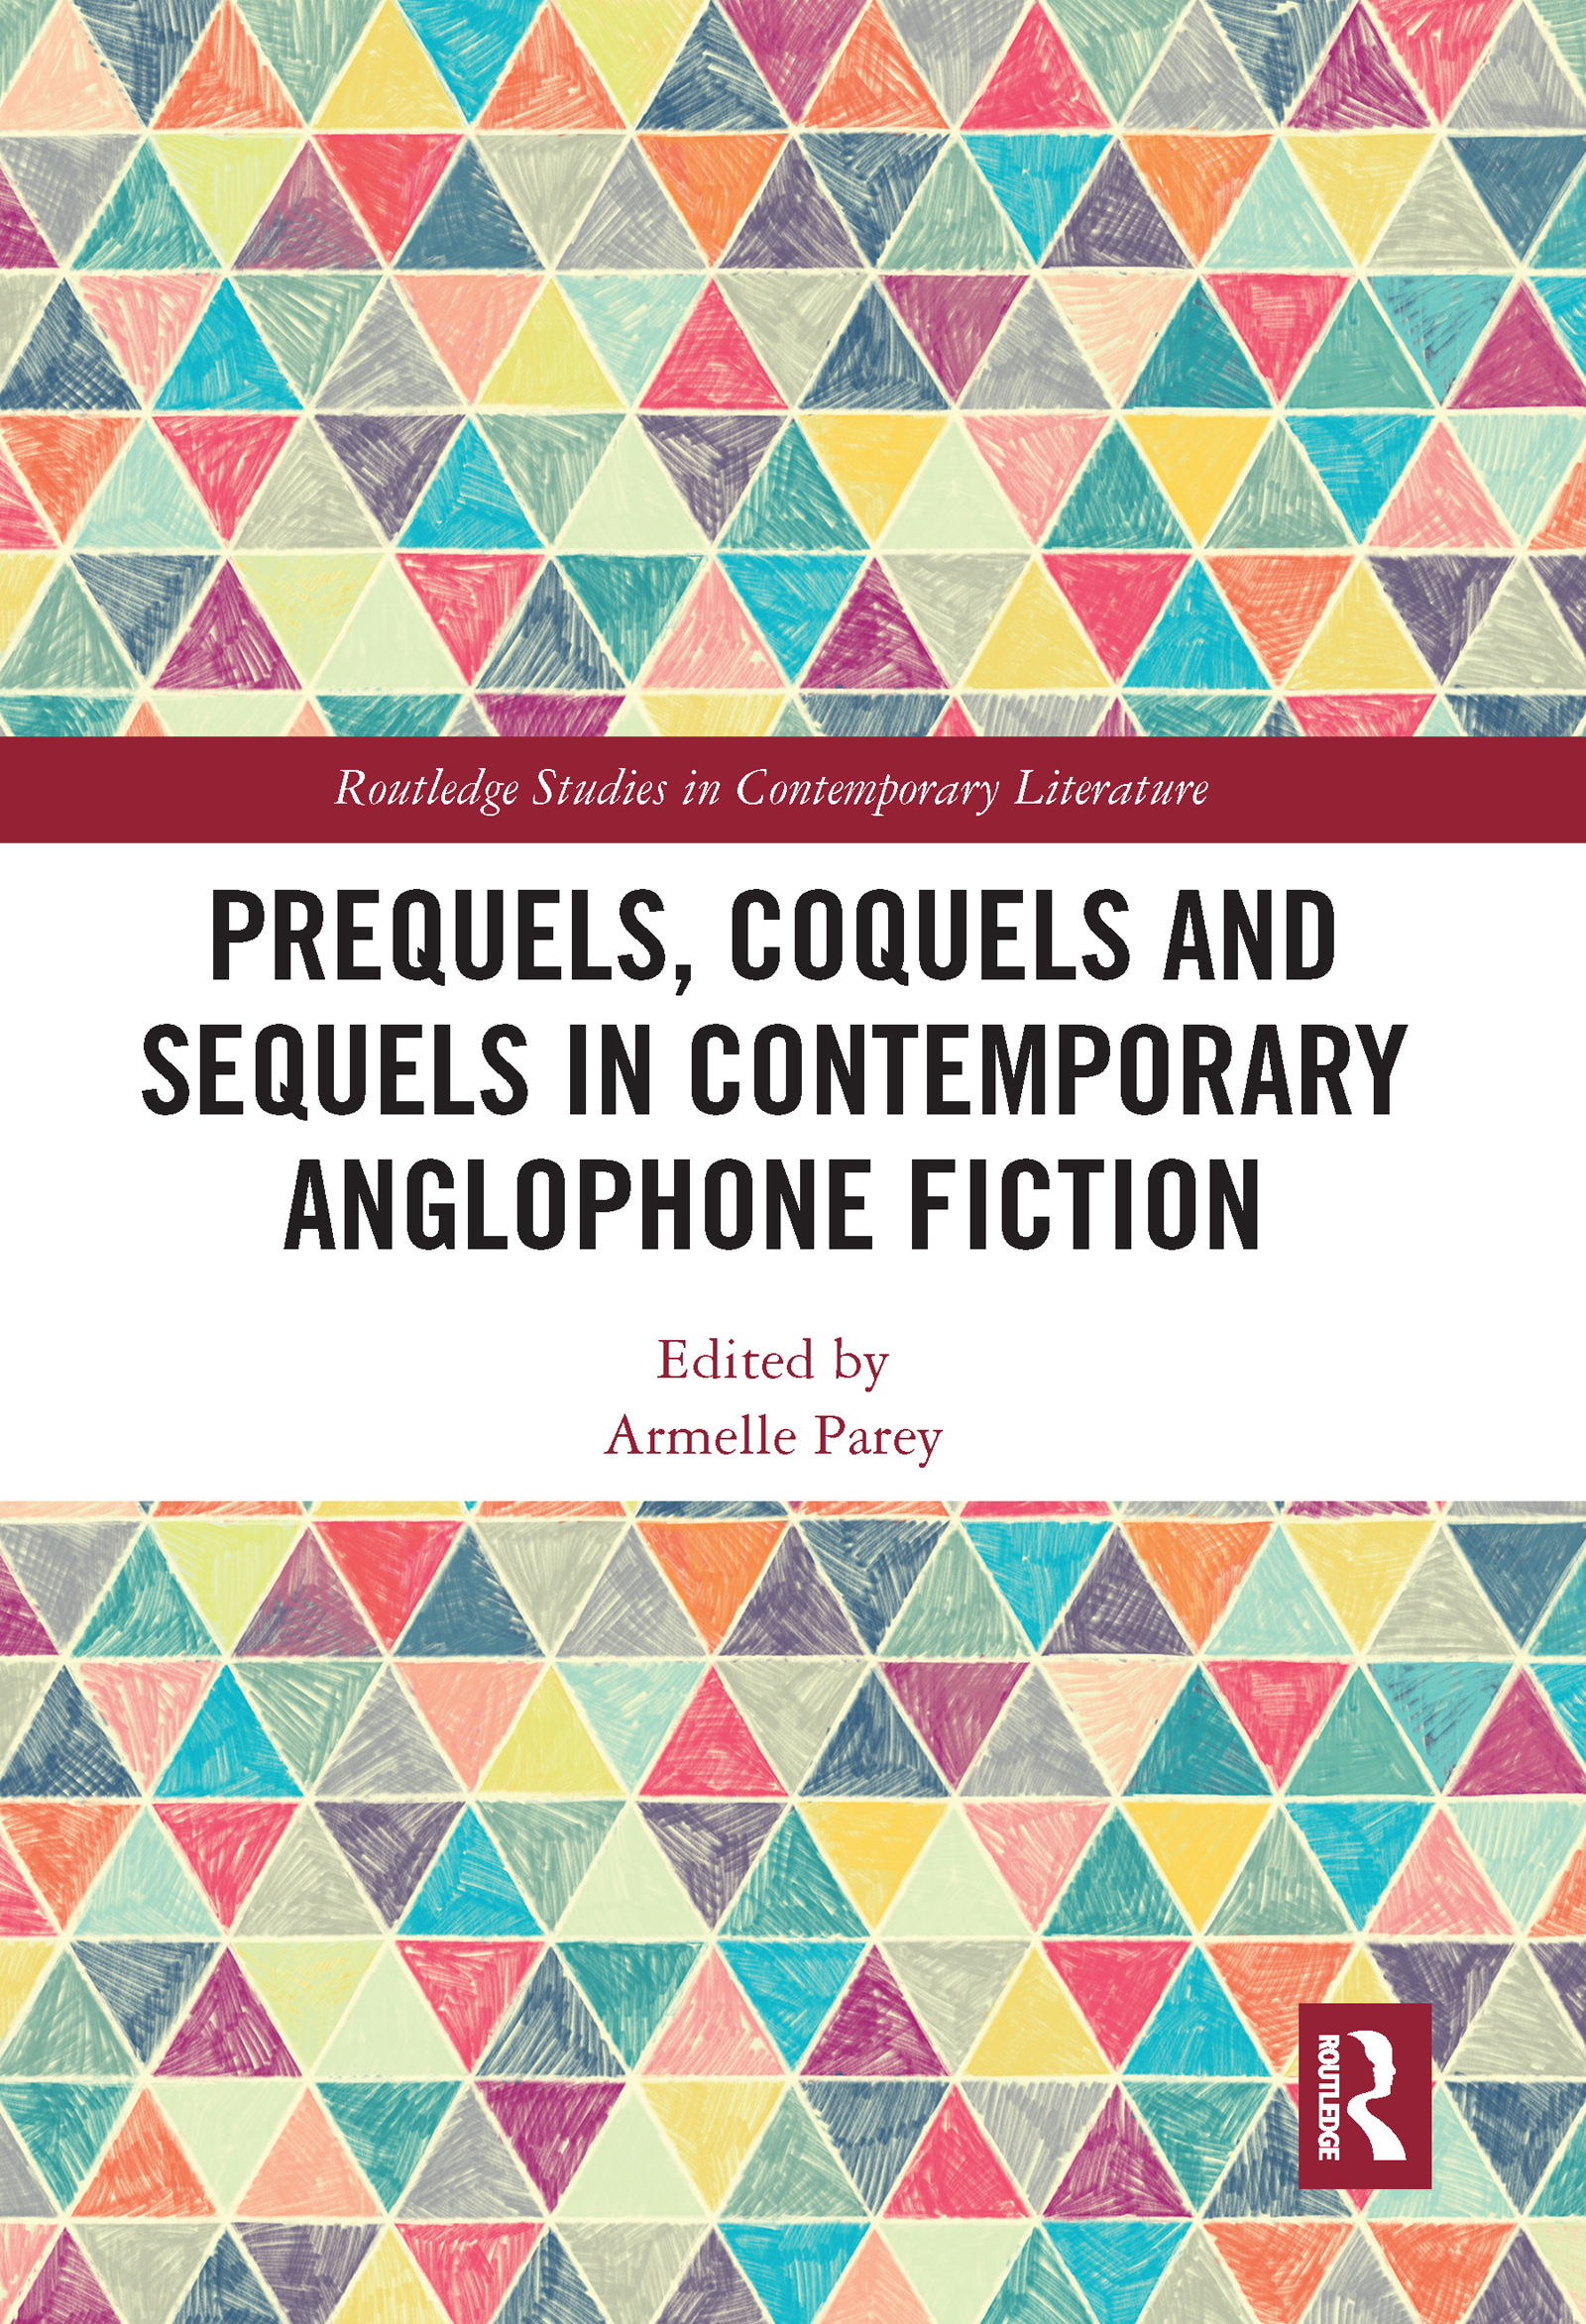 Prequels, Coquels and Sequels in Contemporary Anglophone Fiction